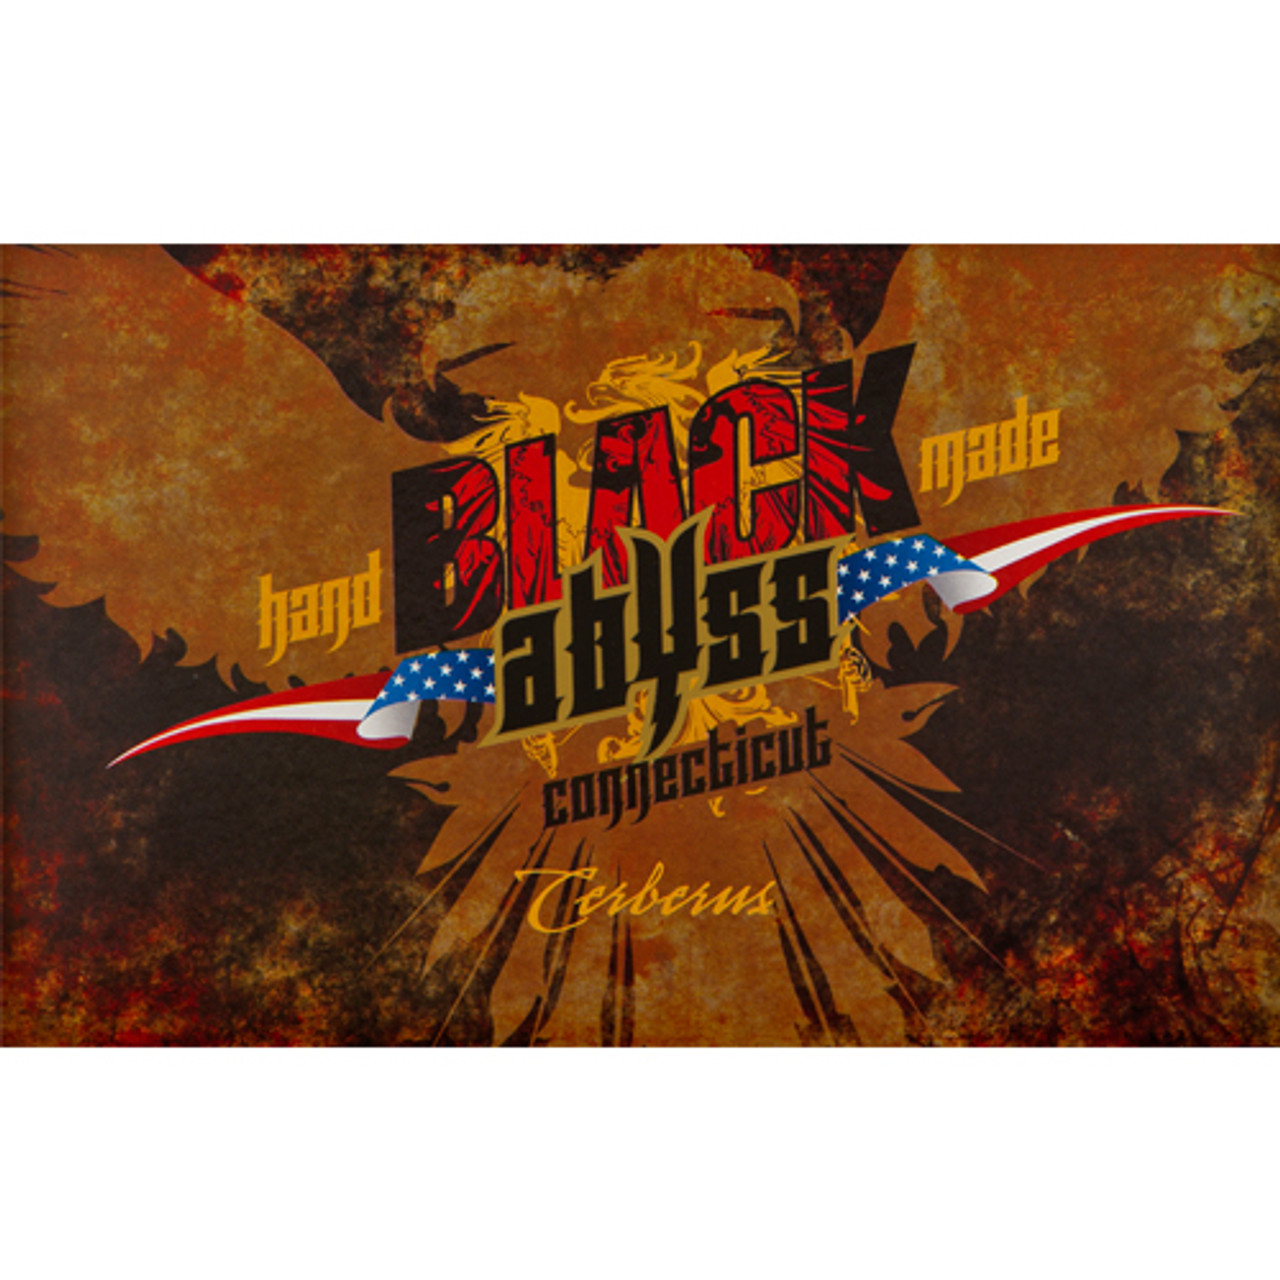 Black Abyss Connecticut Hydra Cigars - 6 x 52 (Box of 20)